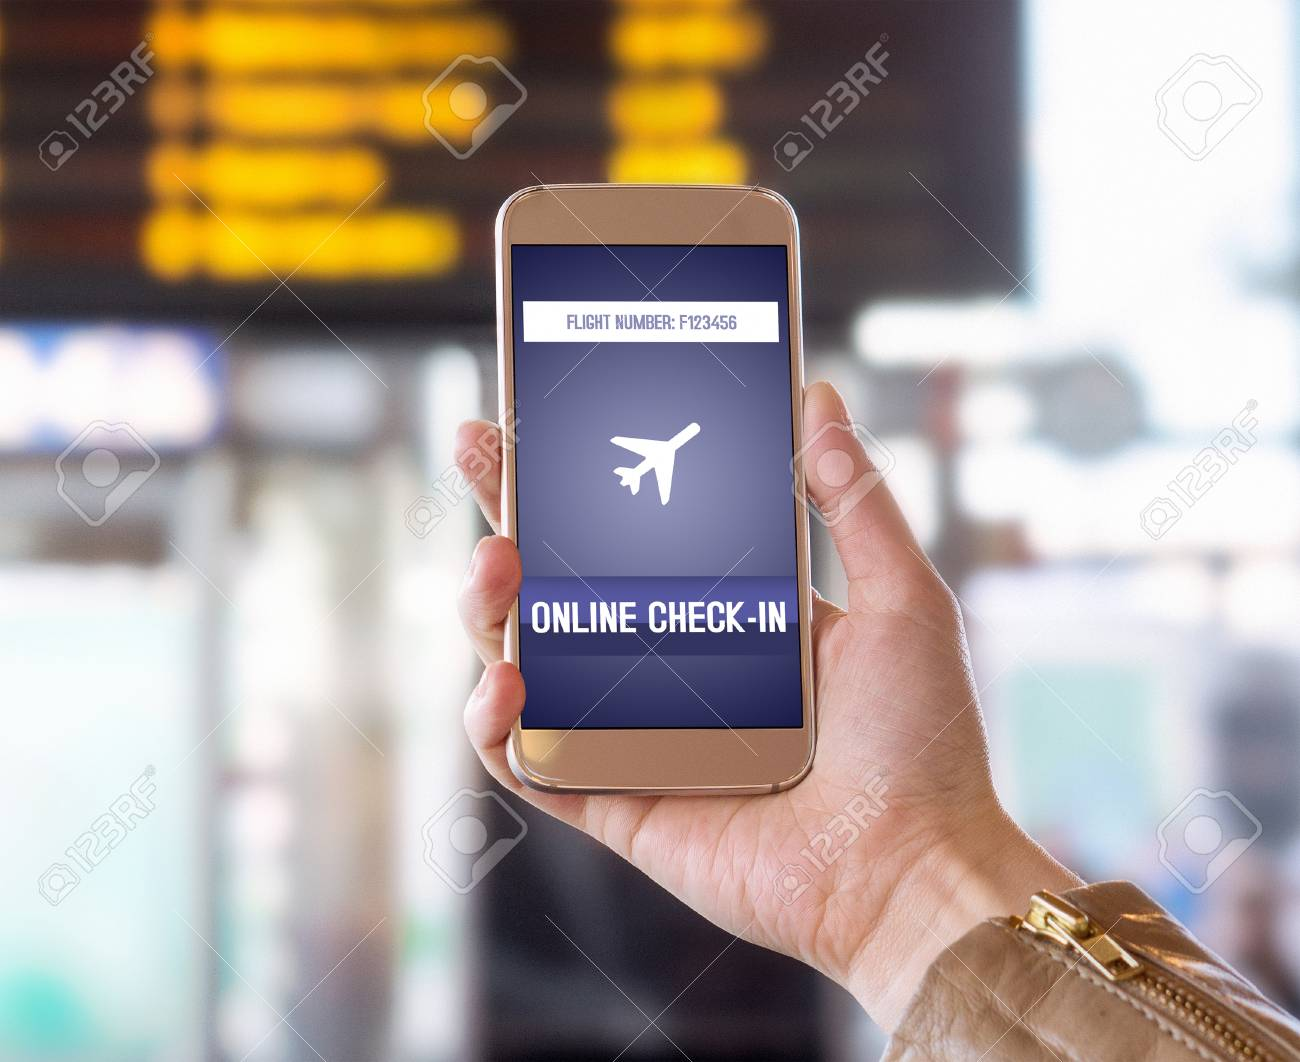 Online check in with mobile phone in airport. Woman checking in to flight with smartphone on the web. Internet self service provided by airline. Hand holding cellphone. Timetable in the background. - 81115996